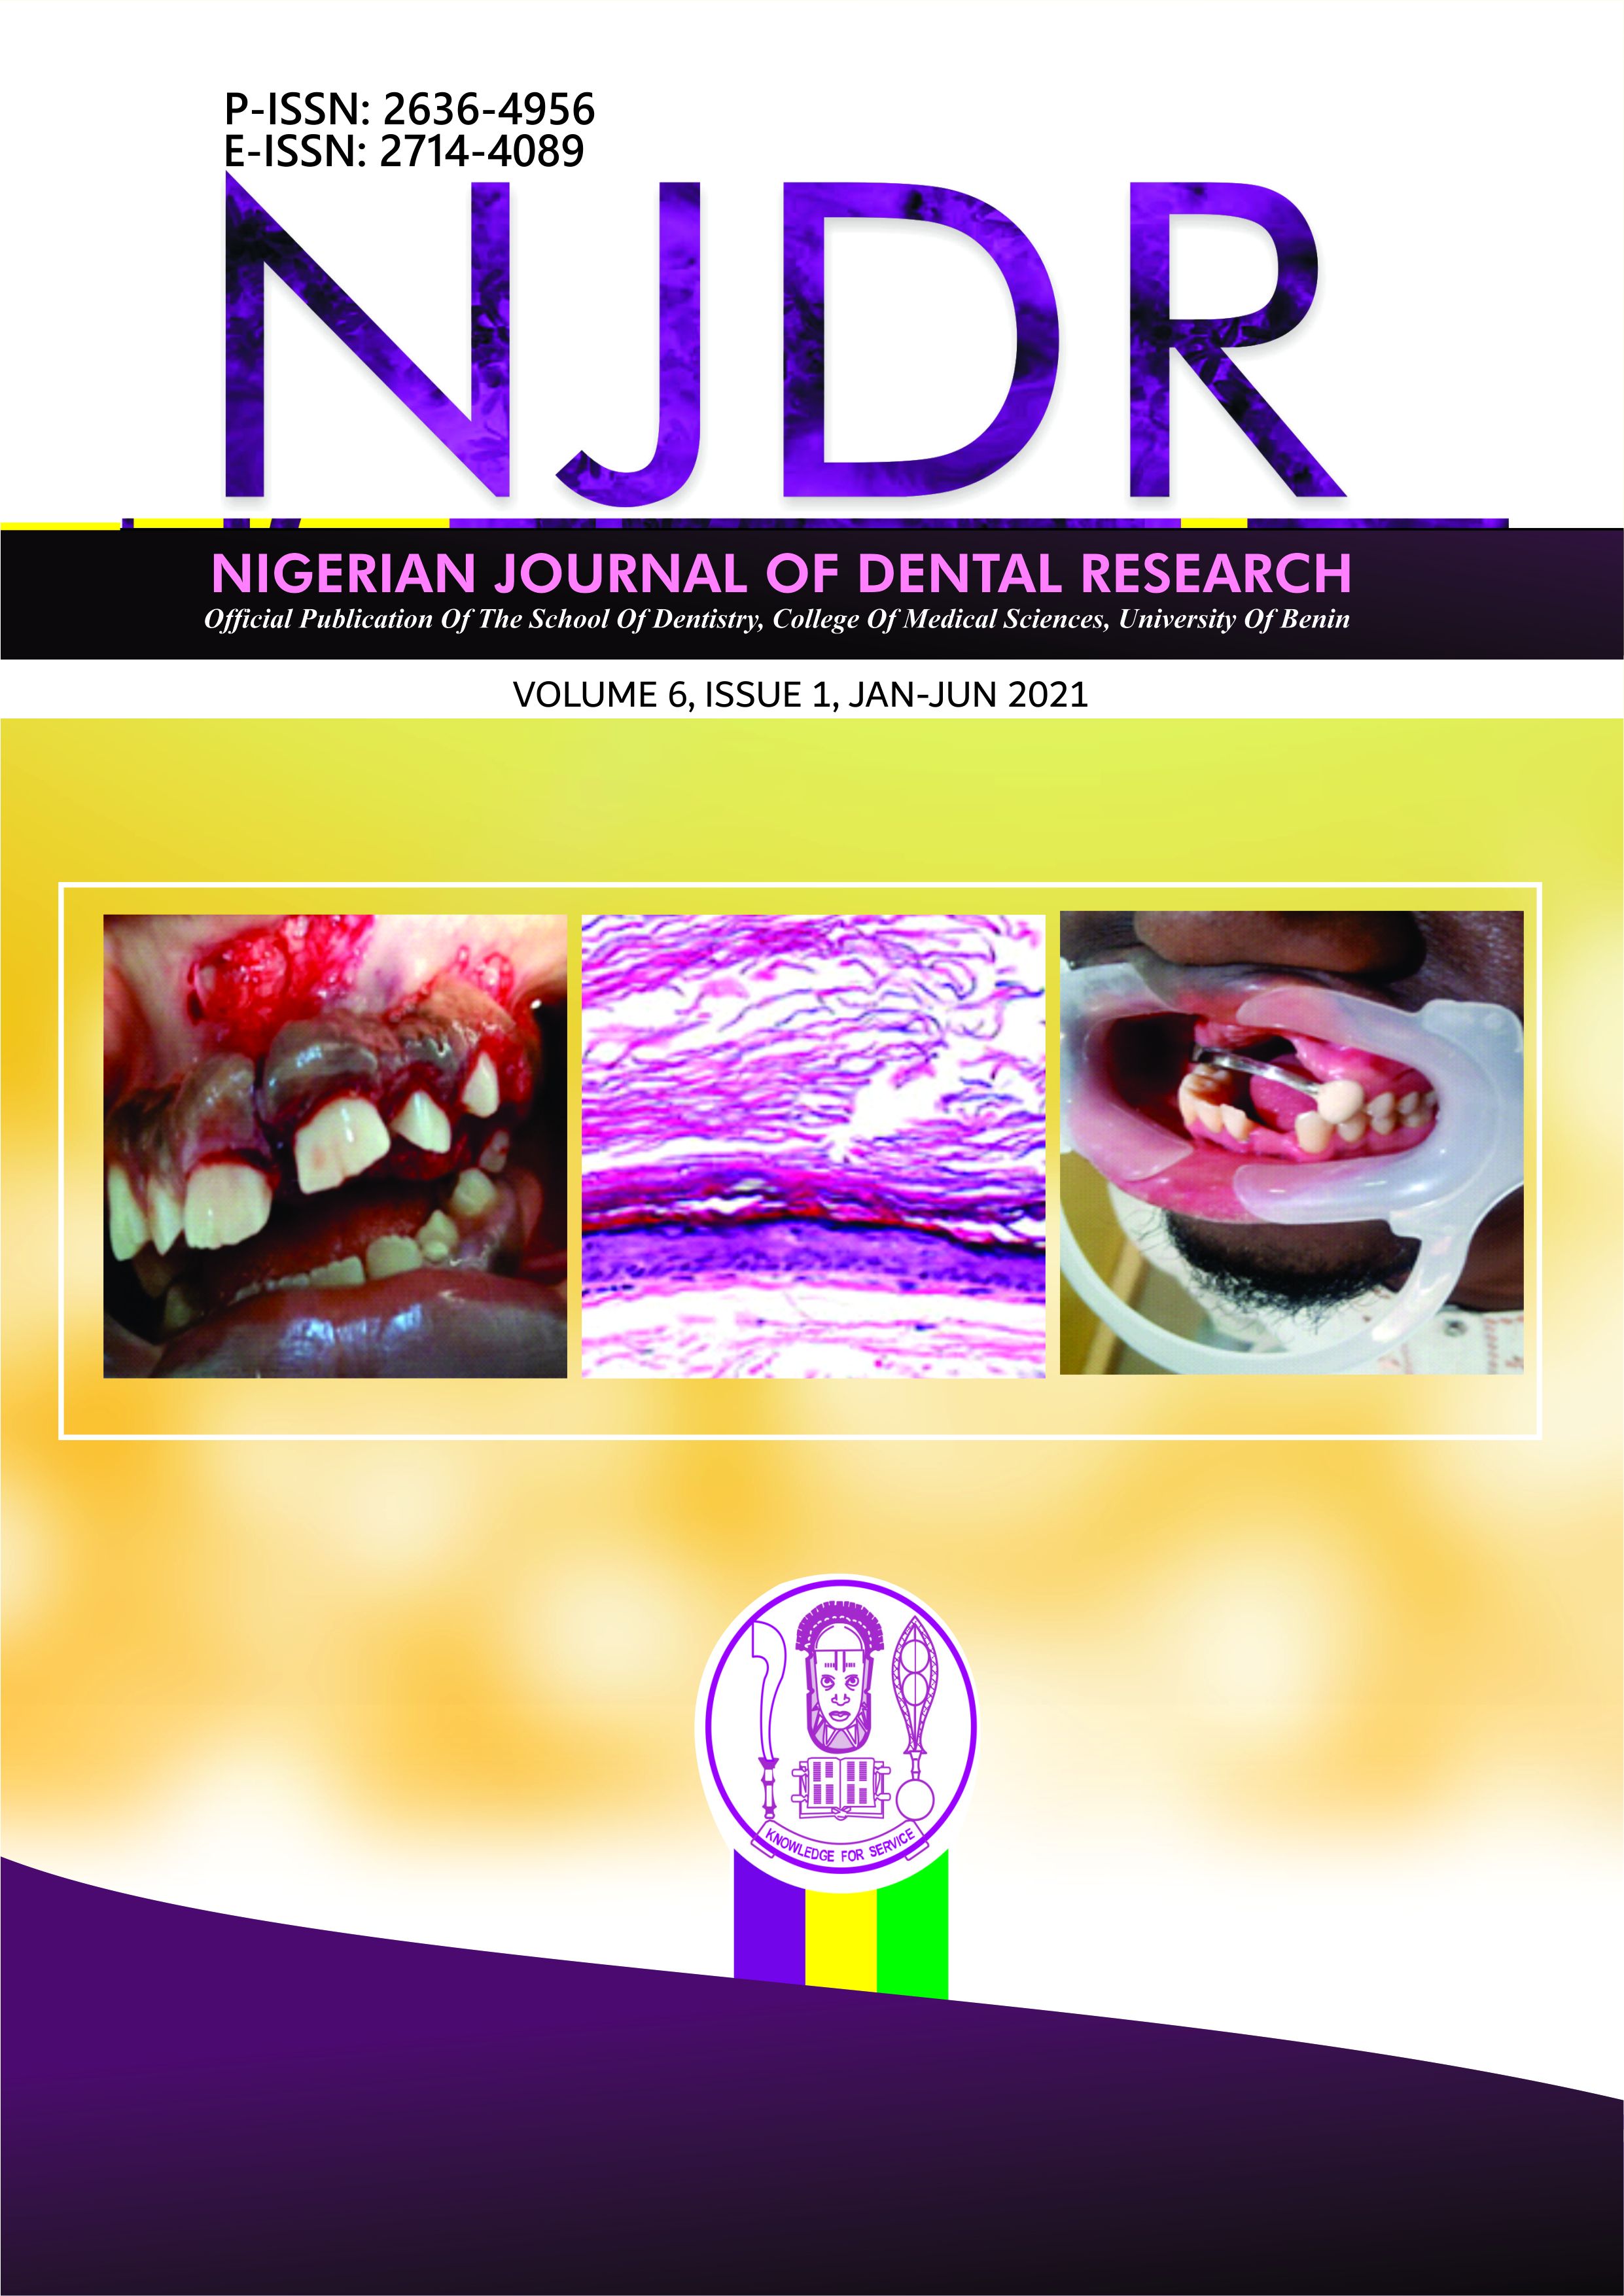 View Vol. 6 No. 1 (2021): Nigerian Journal of Dental Research